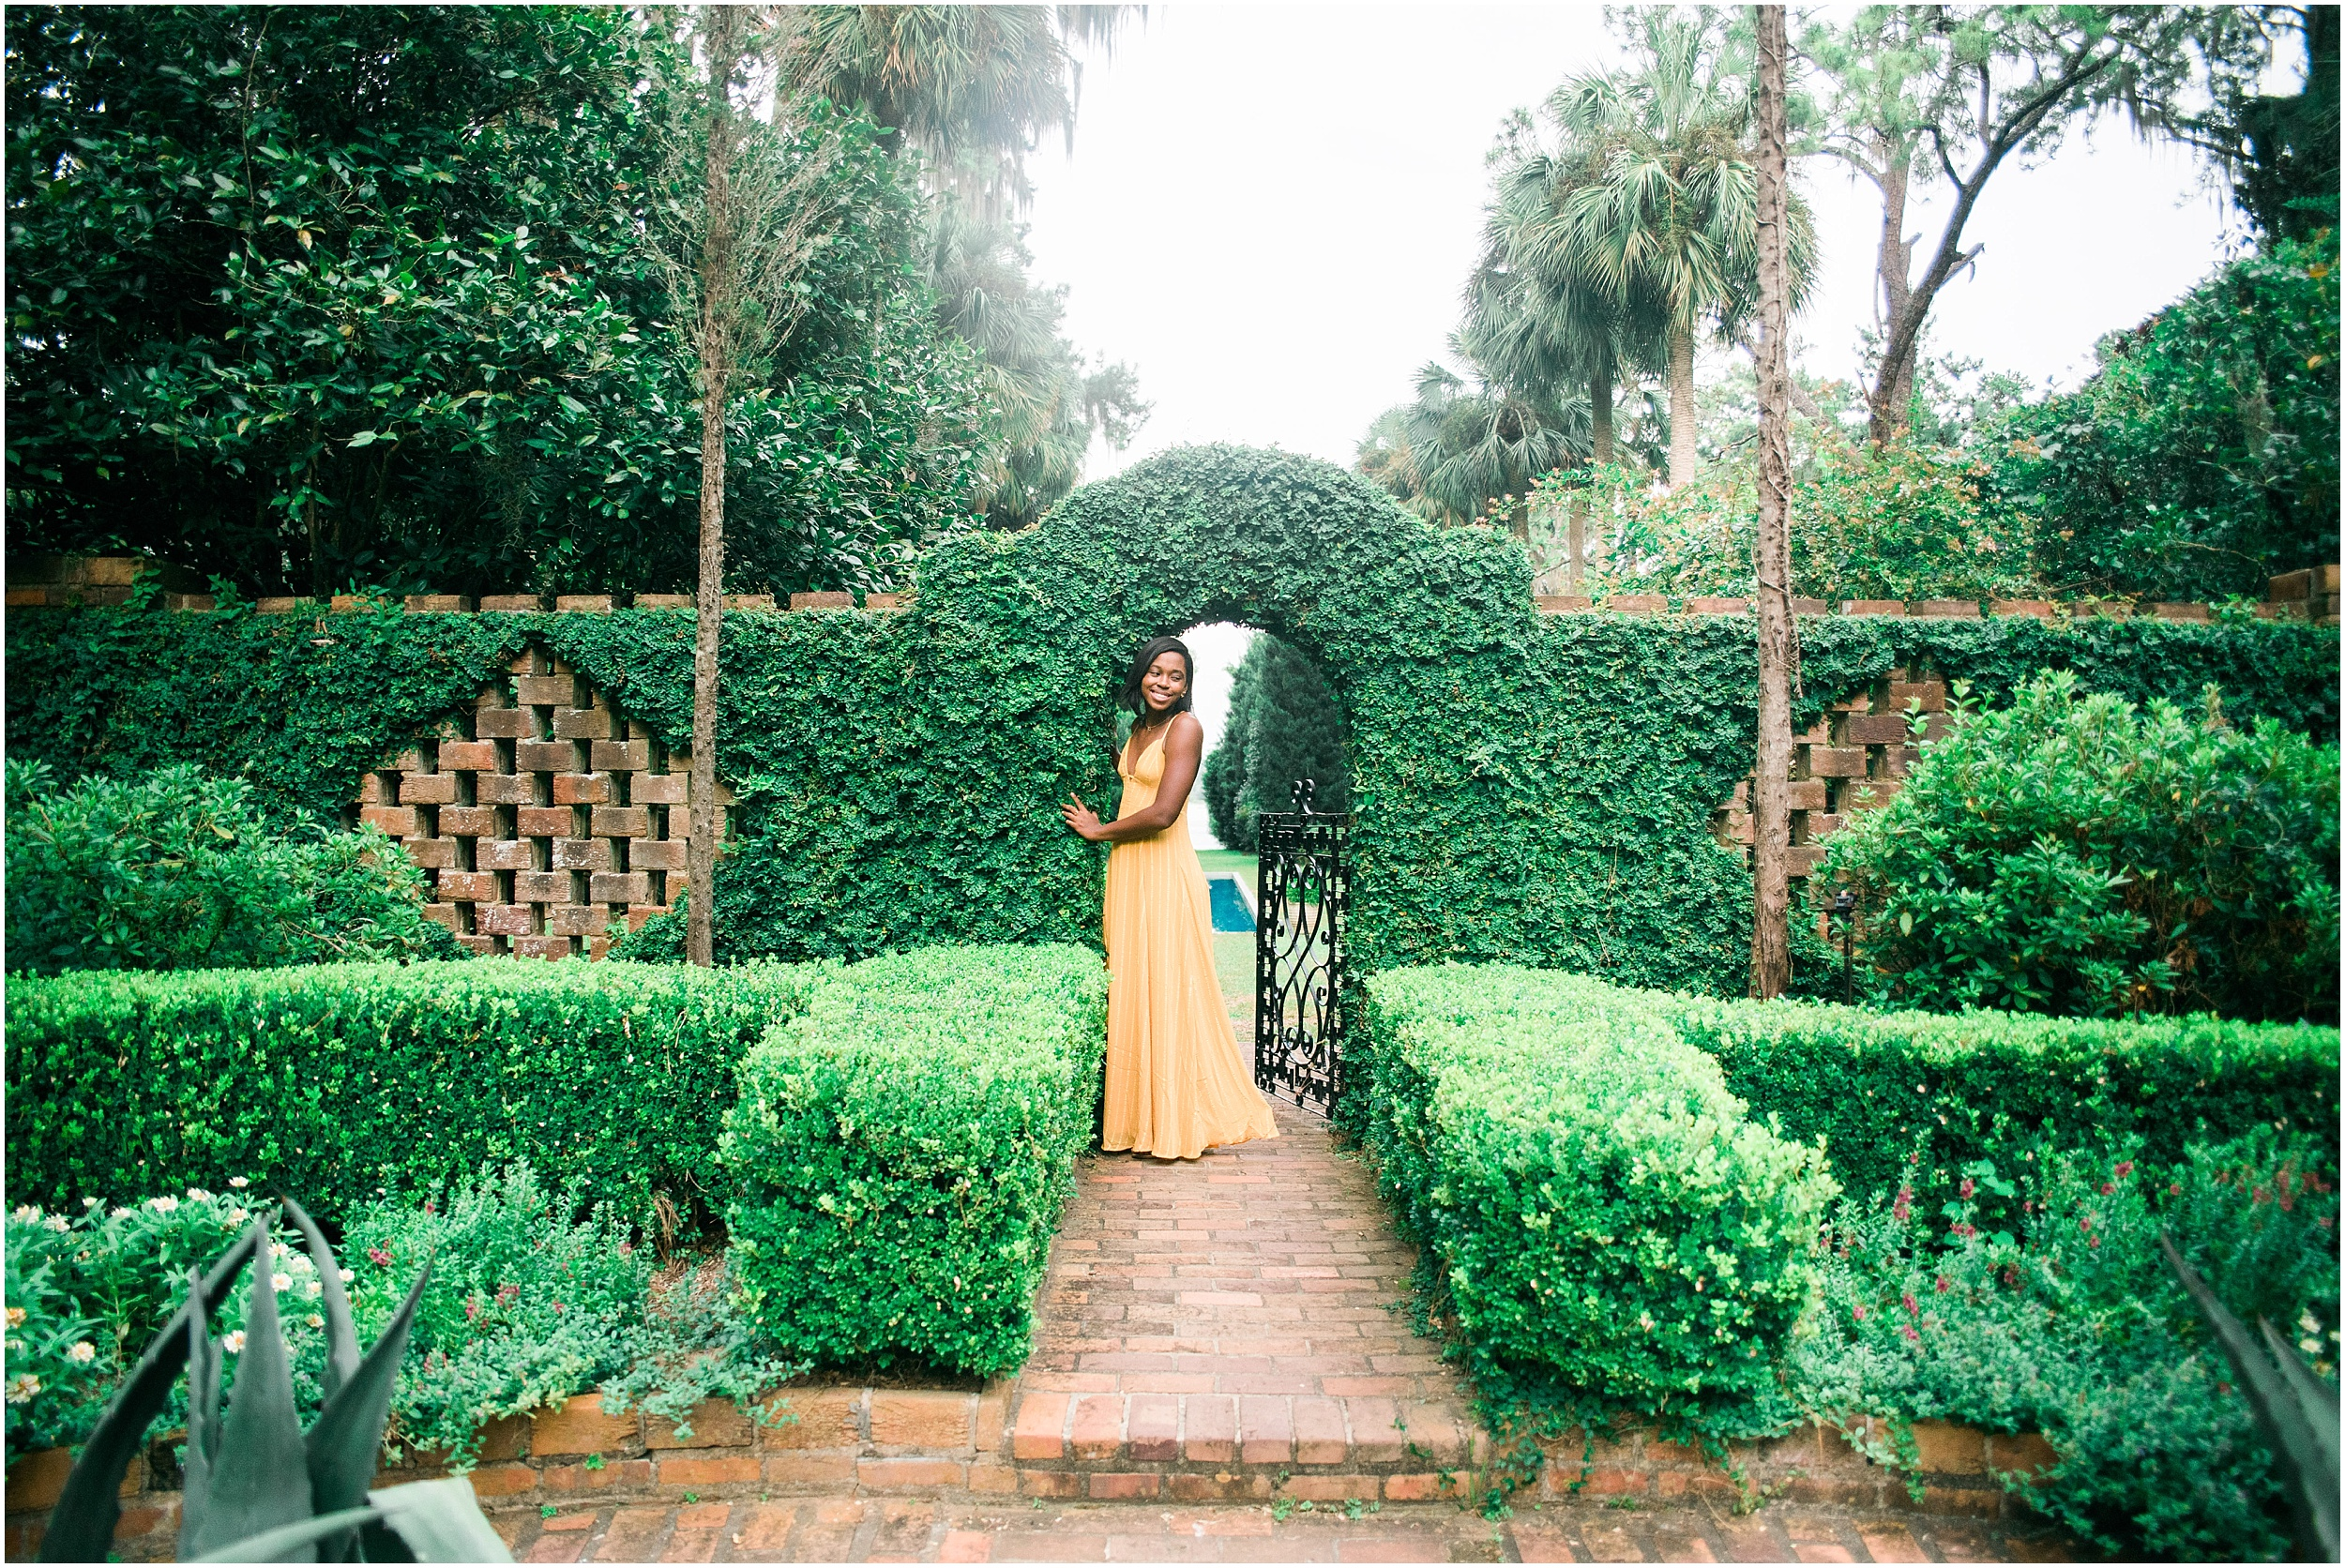 Tallahassee Florida Senior Photographer, Tenejah Senior Session at Maclay Gardens, Tallahassee Florida_0018.jpg